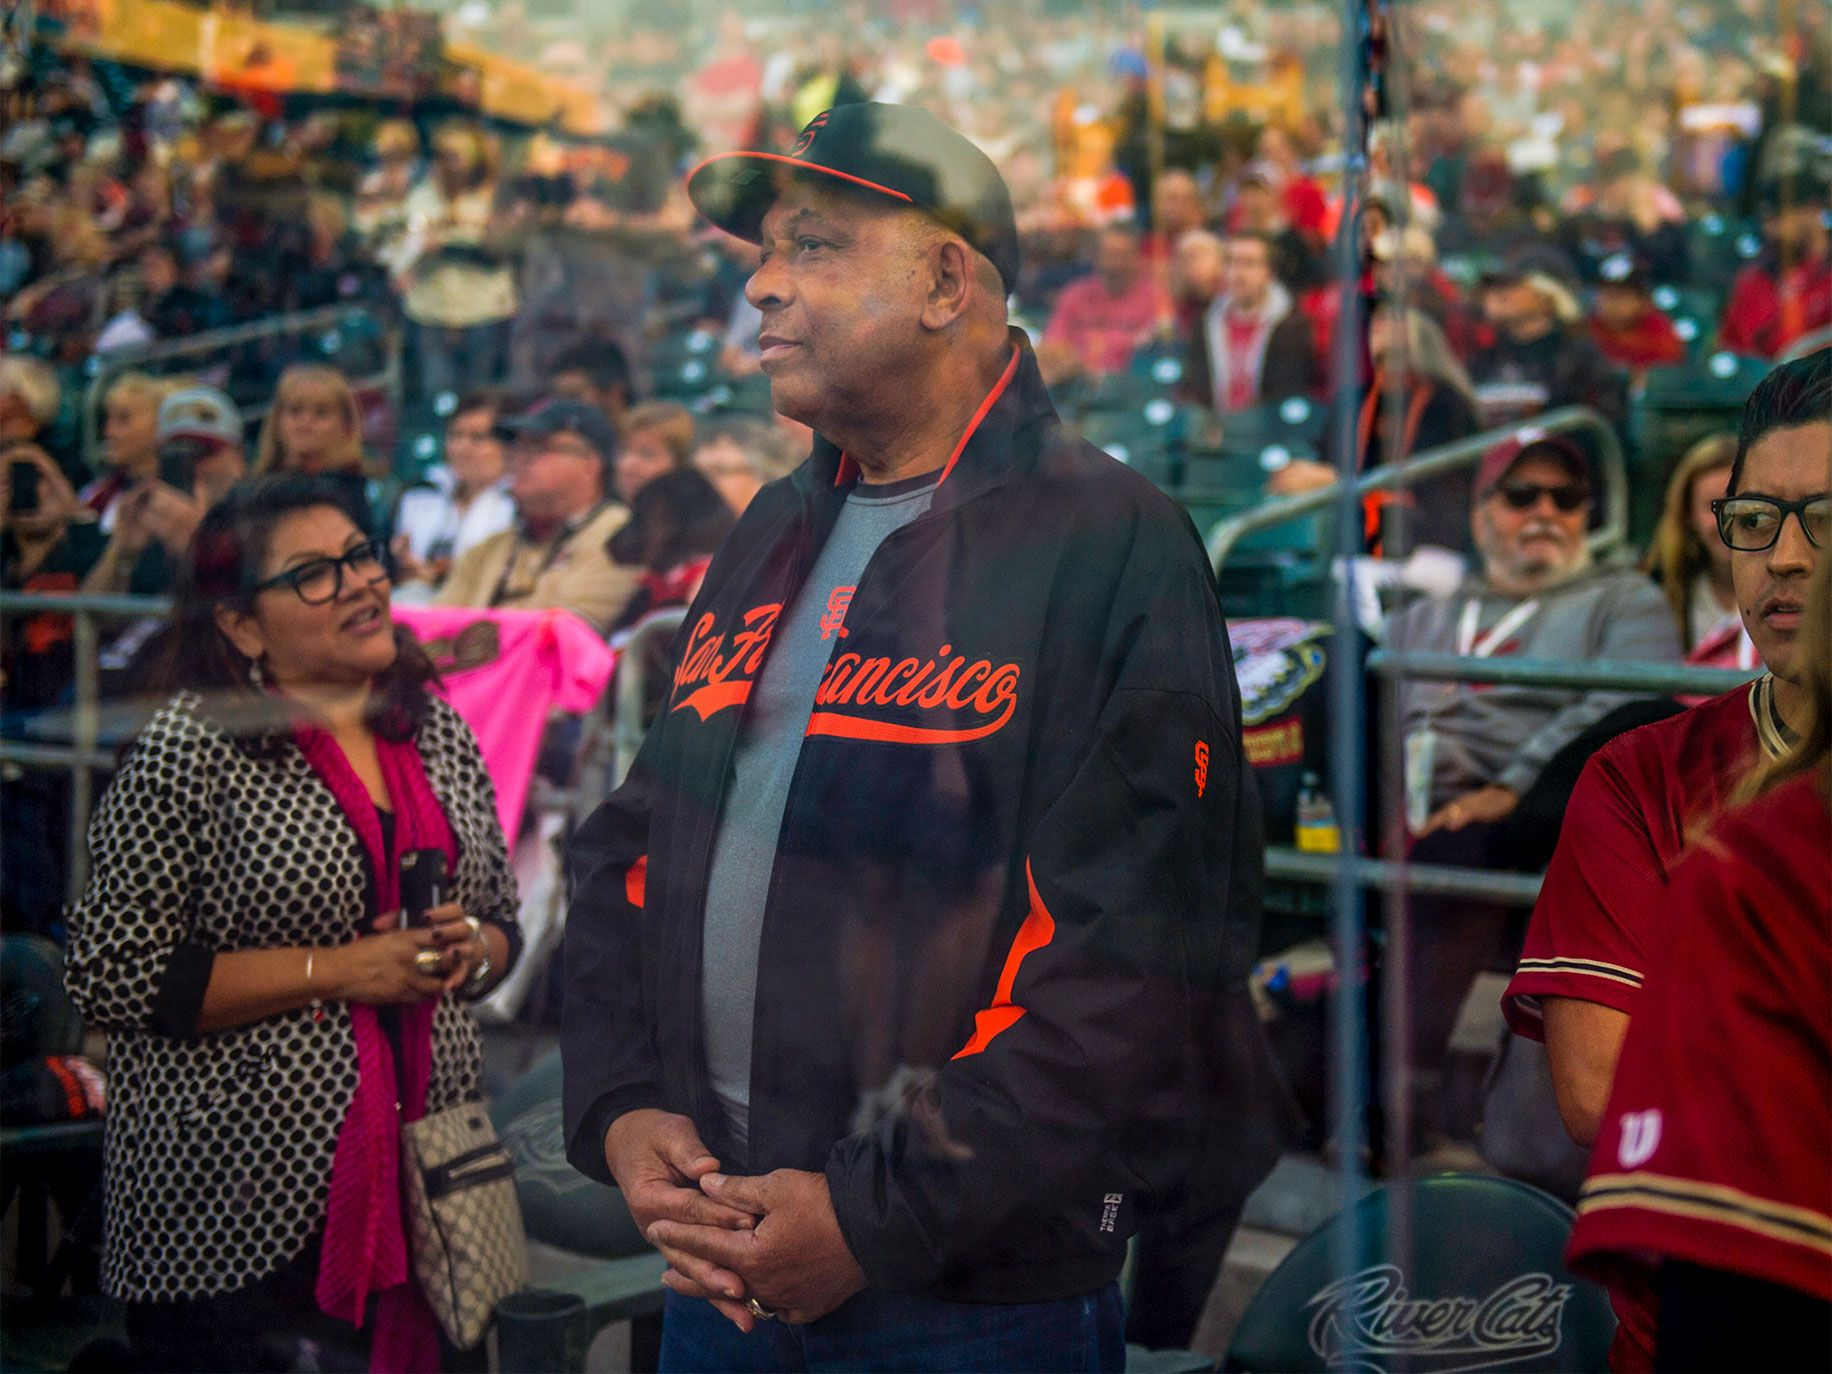 Former San Francisco Giants player Orlando Cepeda. As part of a vanguard of Latino players for the team in the 1960s, they had the opportunity to create a baseball dynasty — but the team was torn apart by racial prejudice and mismanagement. Cepeda ultimately made it to baseball's Hall of Fame.